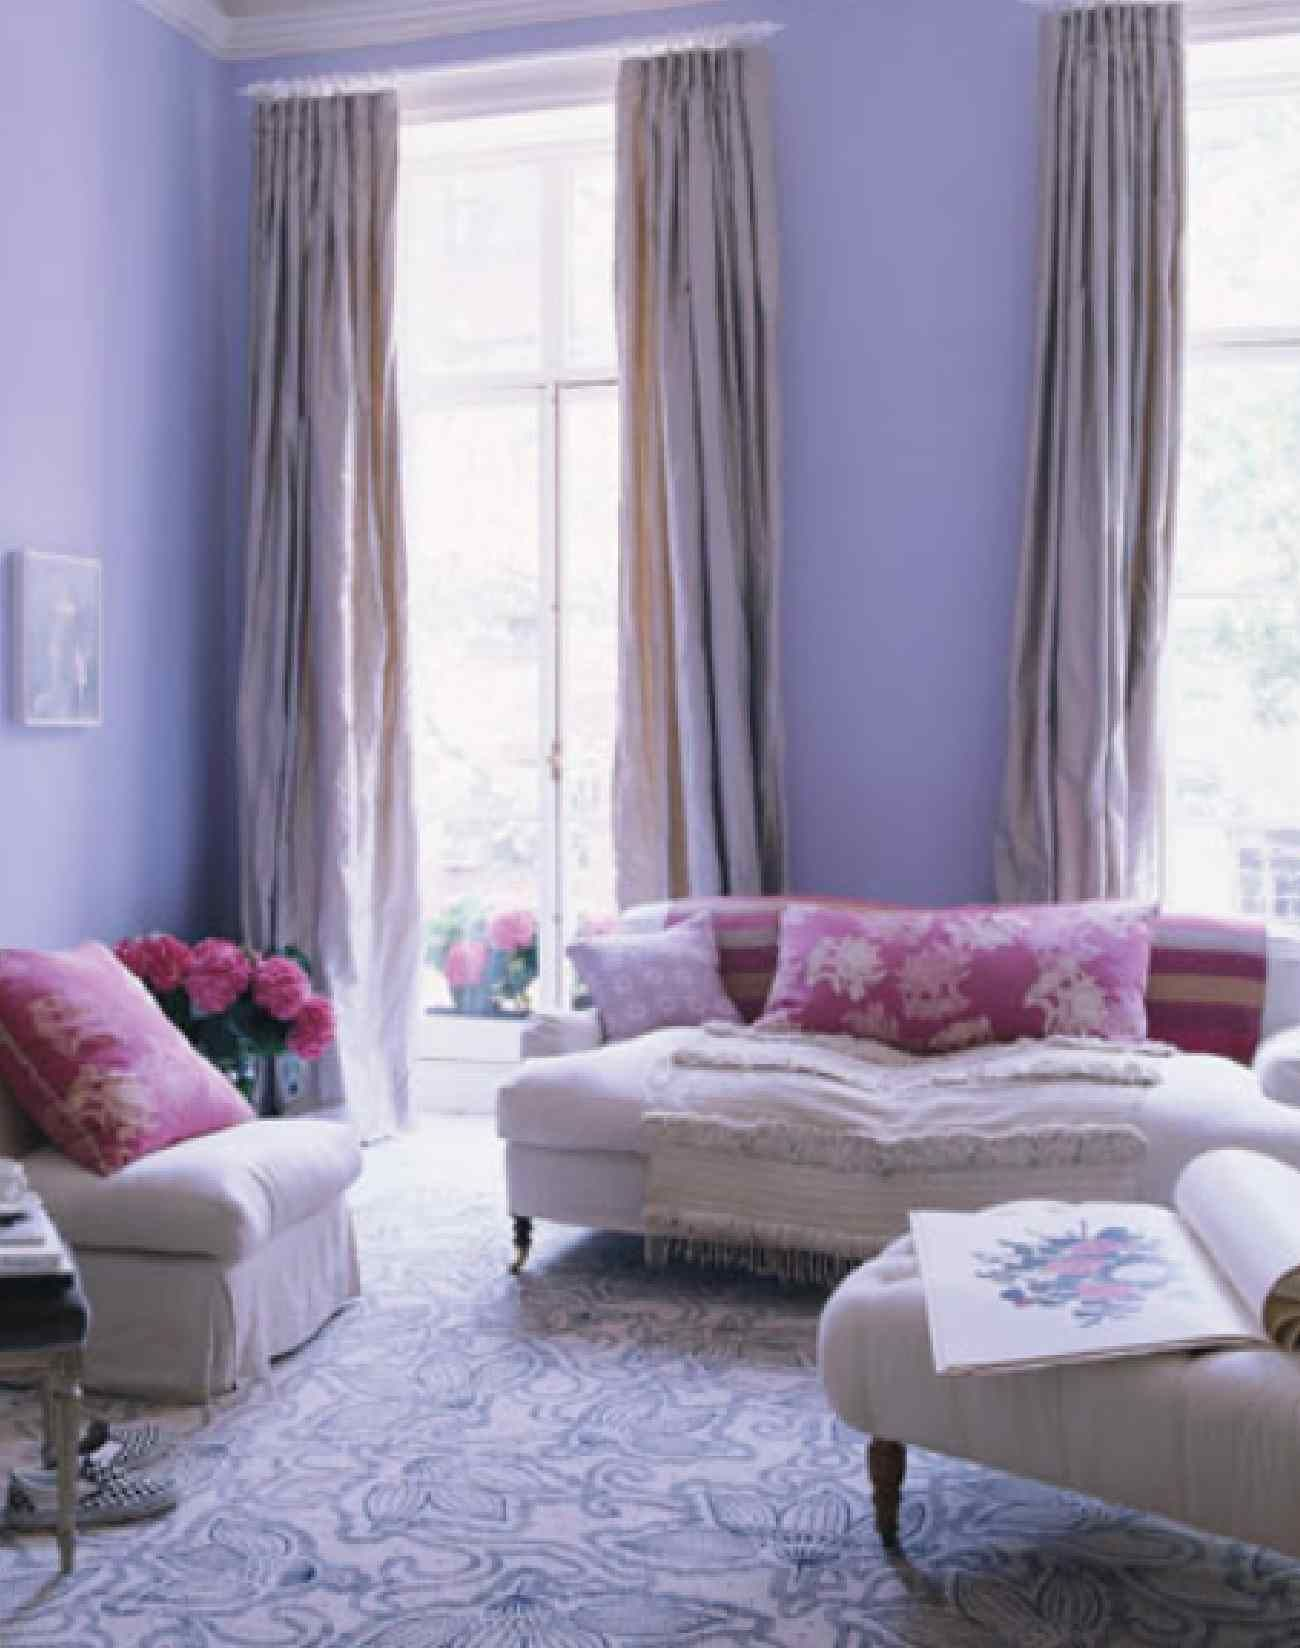 Lavender Paint Ideas For Your Home One Kings Lane: Purple Living Room Interior Design Ideas: Pretty Pastels